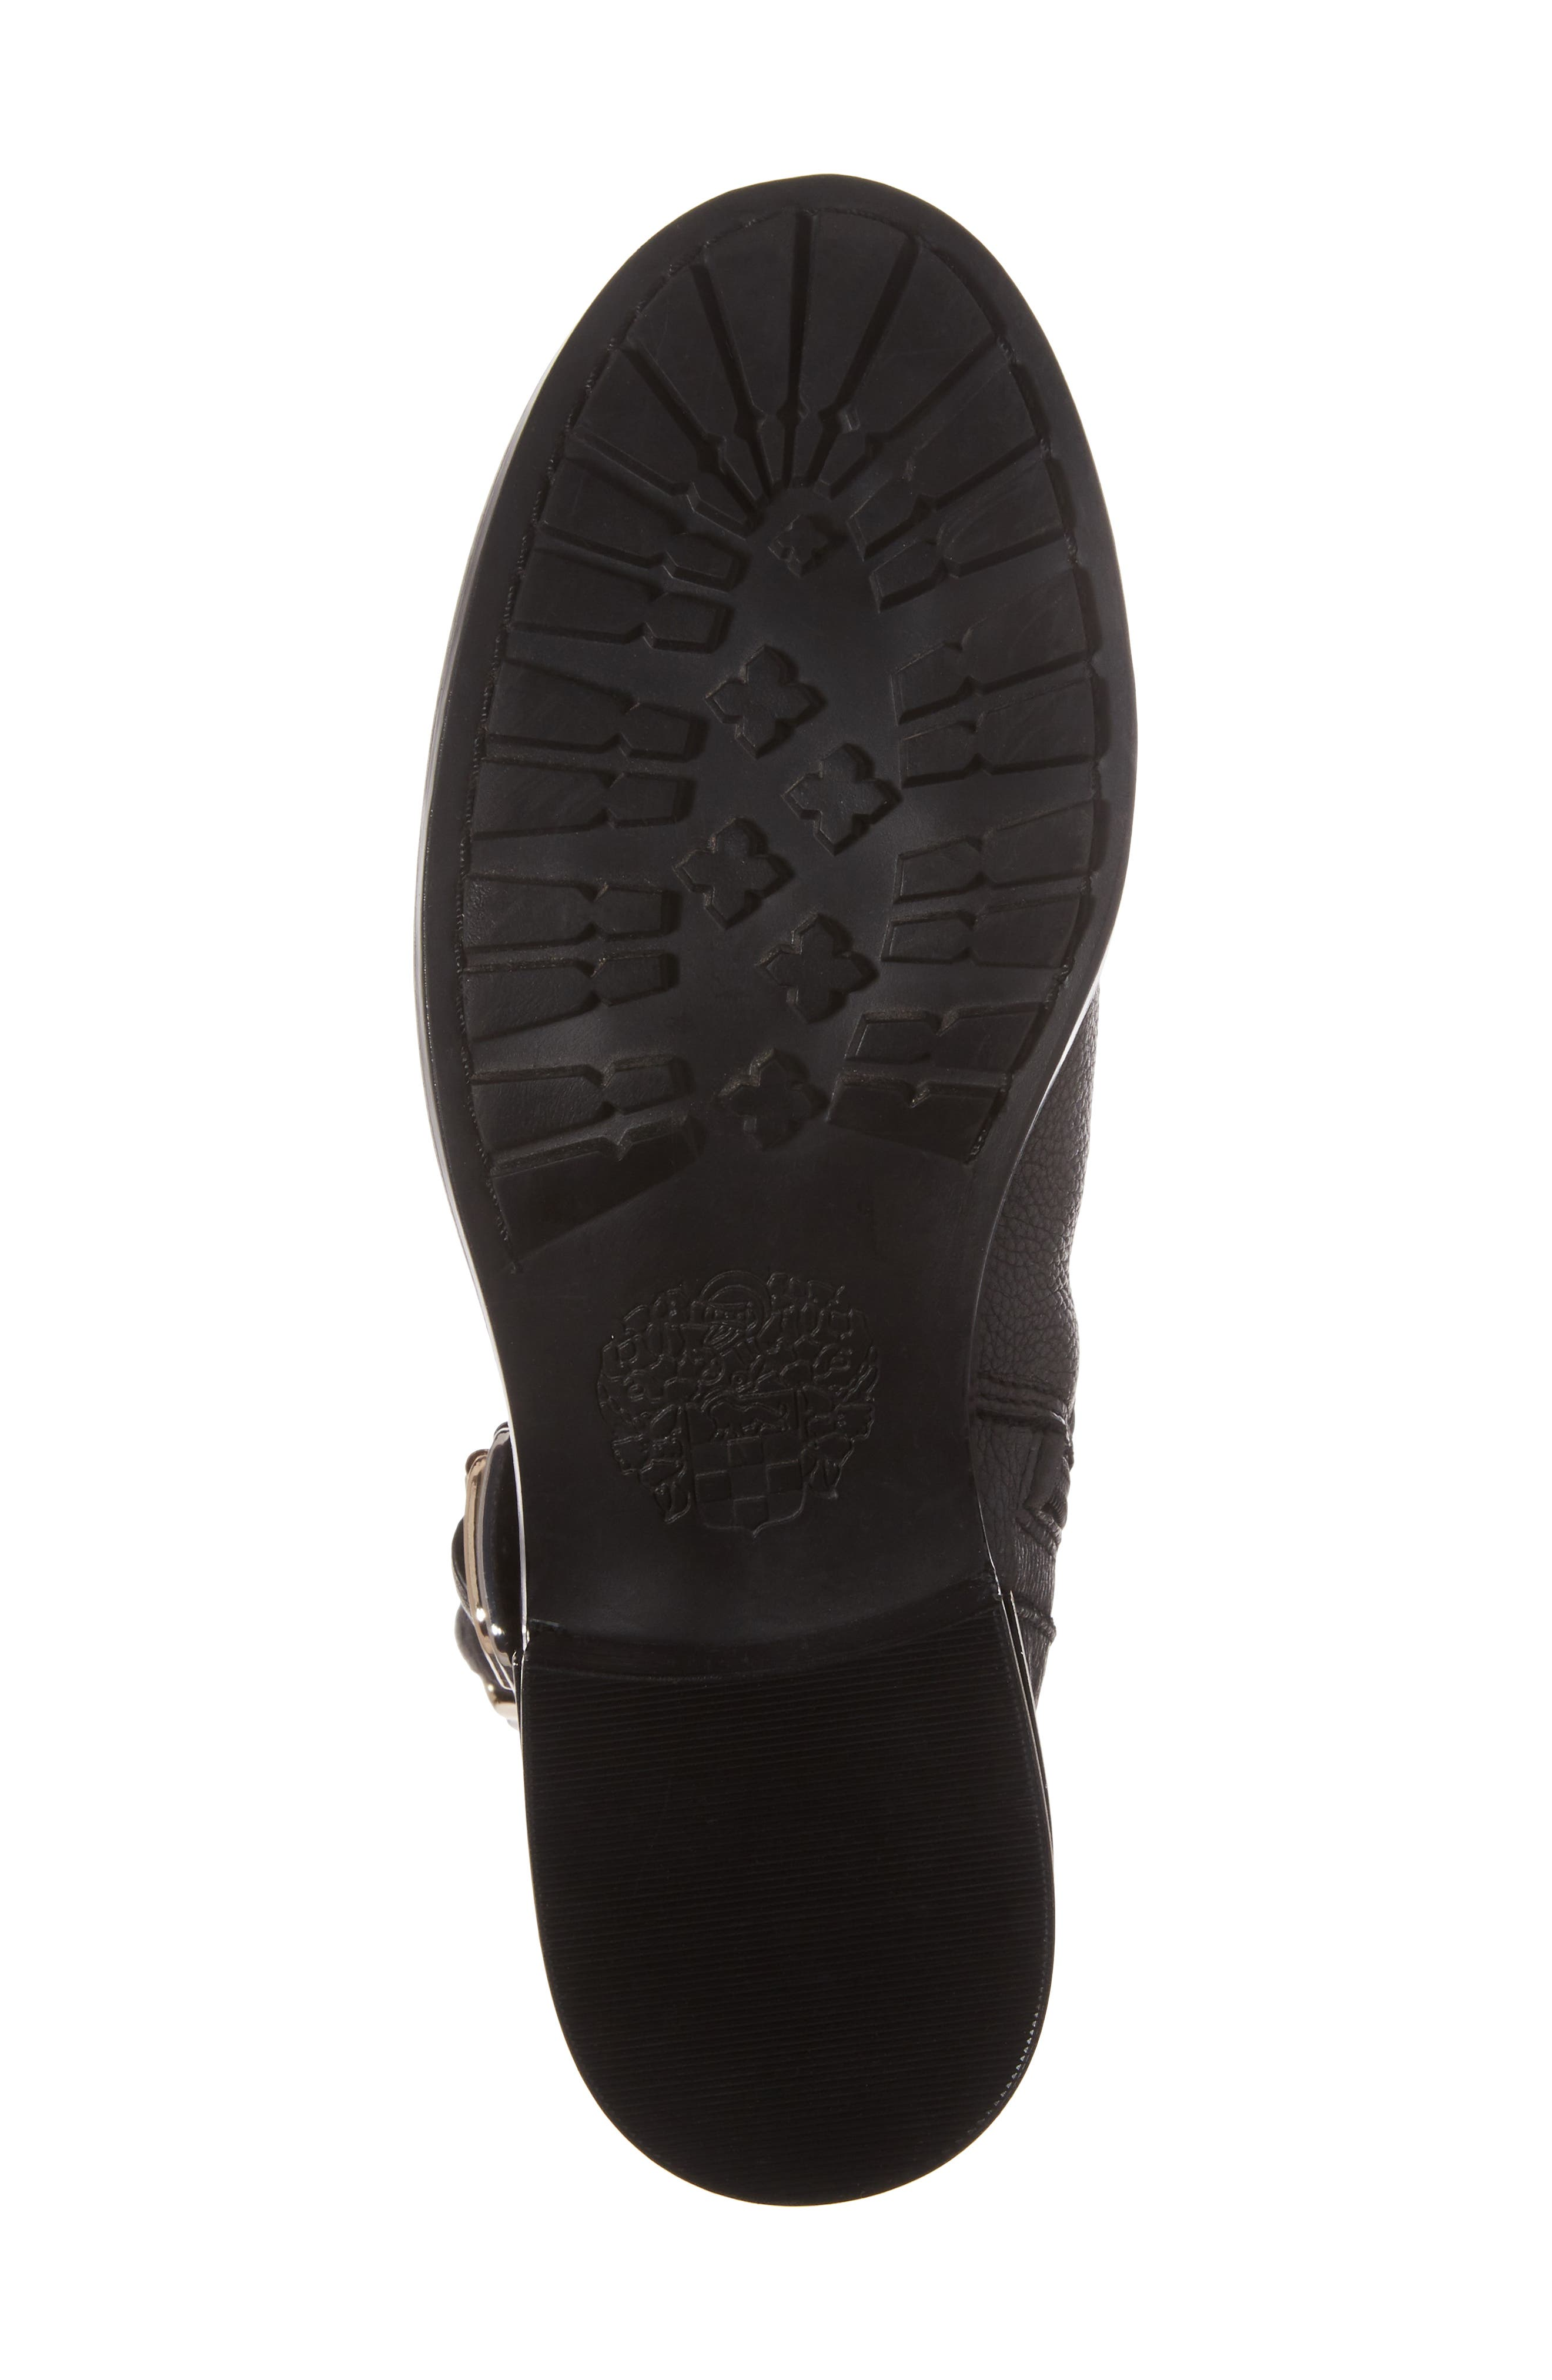 Webey Boot,                             Alternate thumbnail 6, color,                             Black Leather